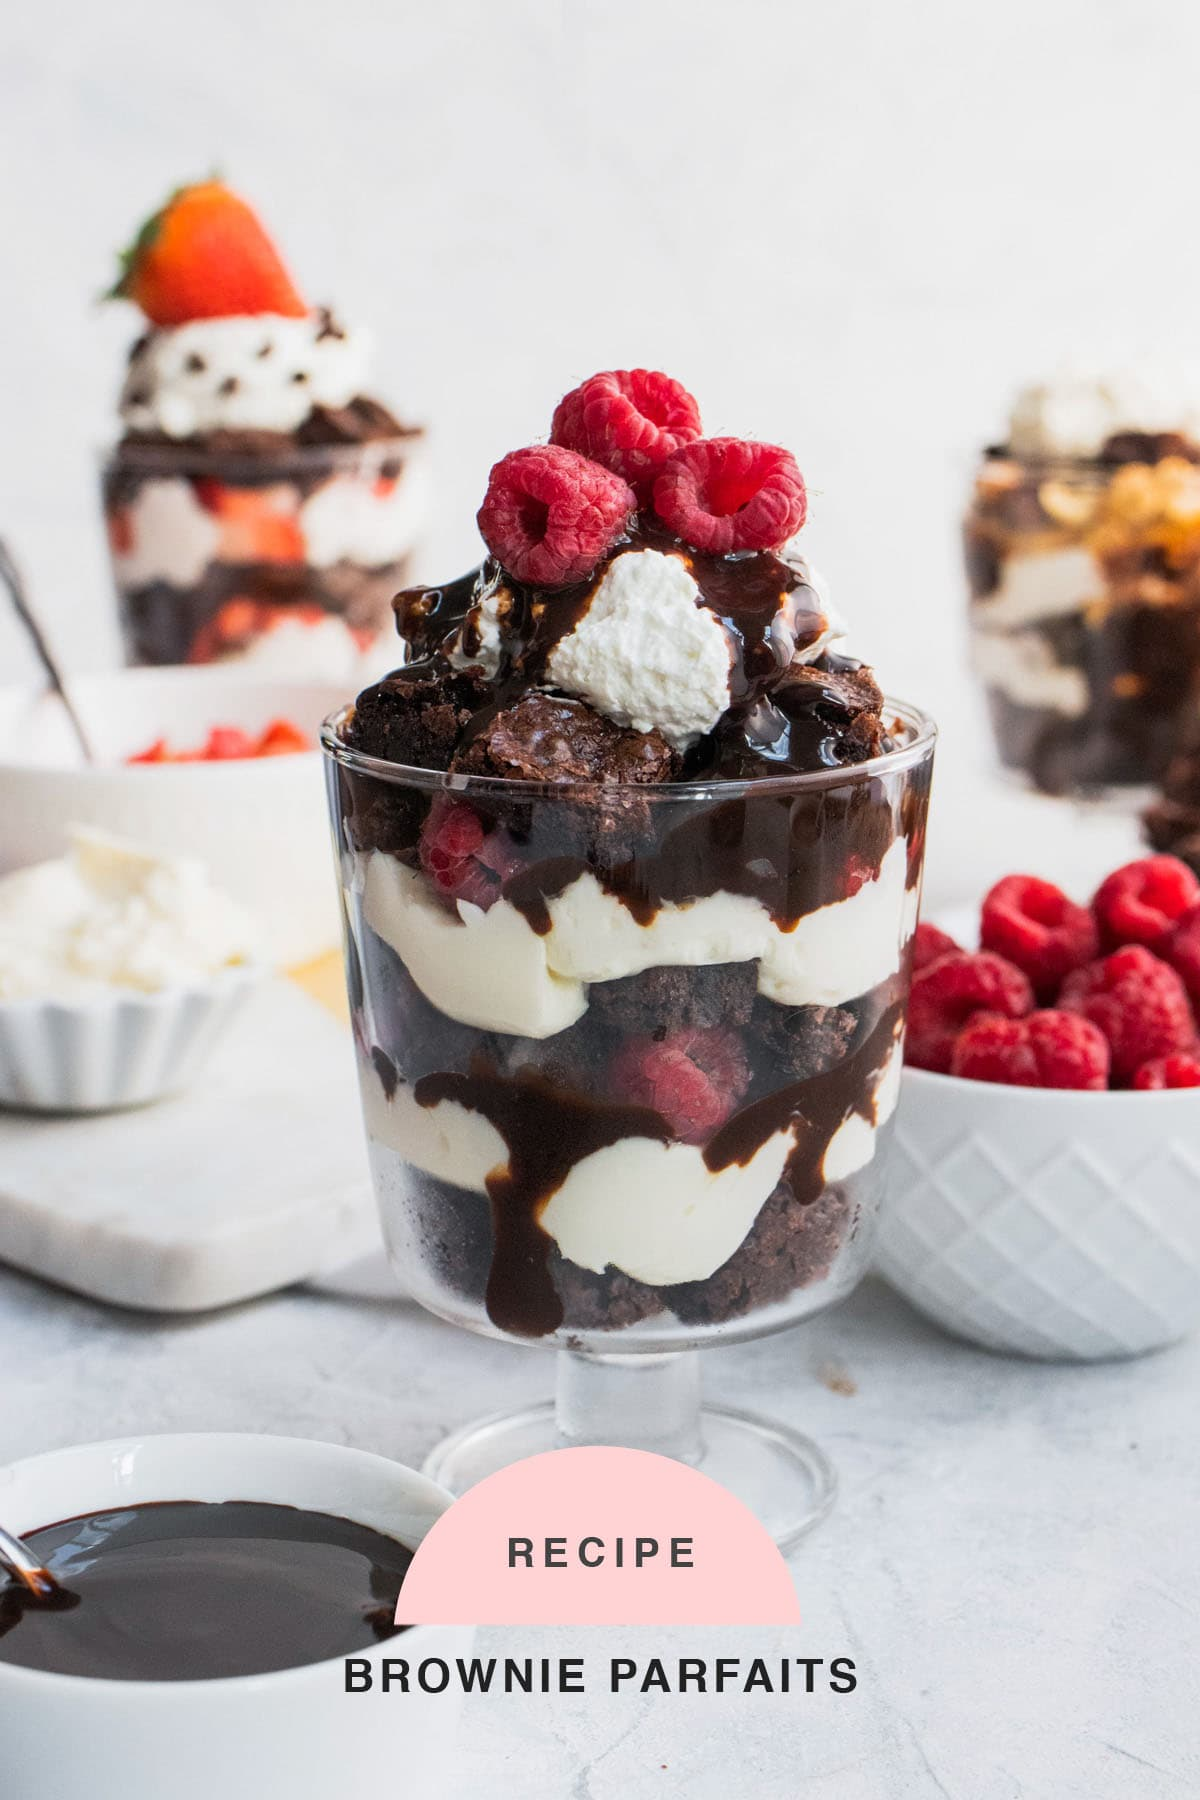 RECIPE Brownie Parfaits